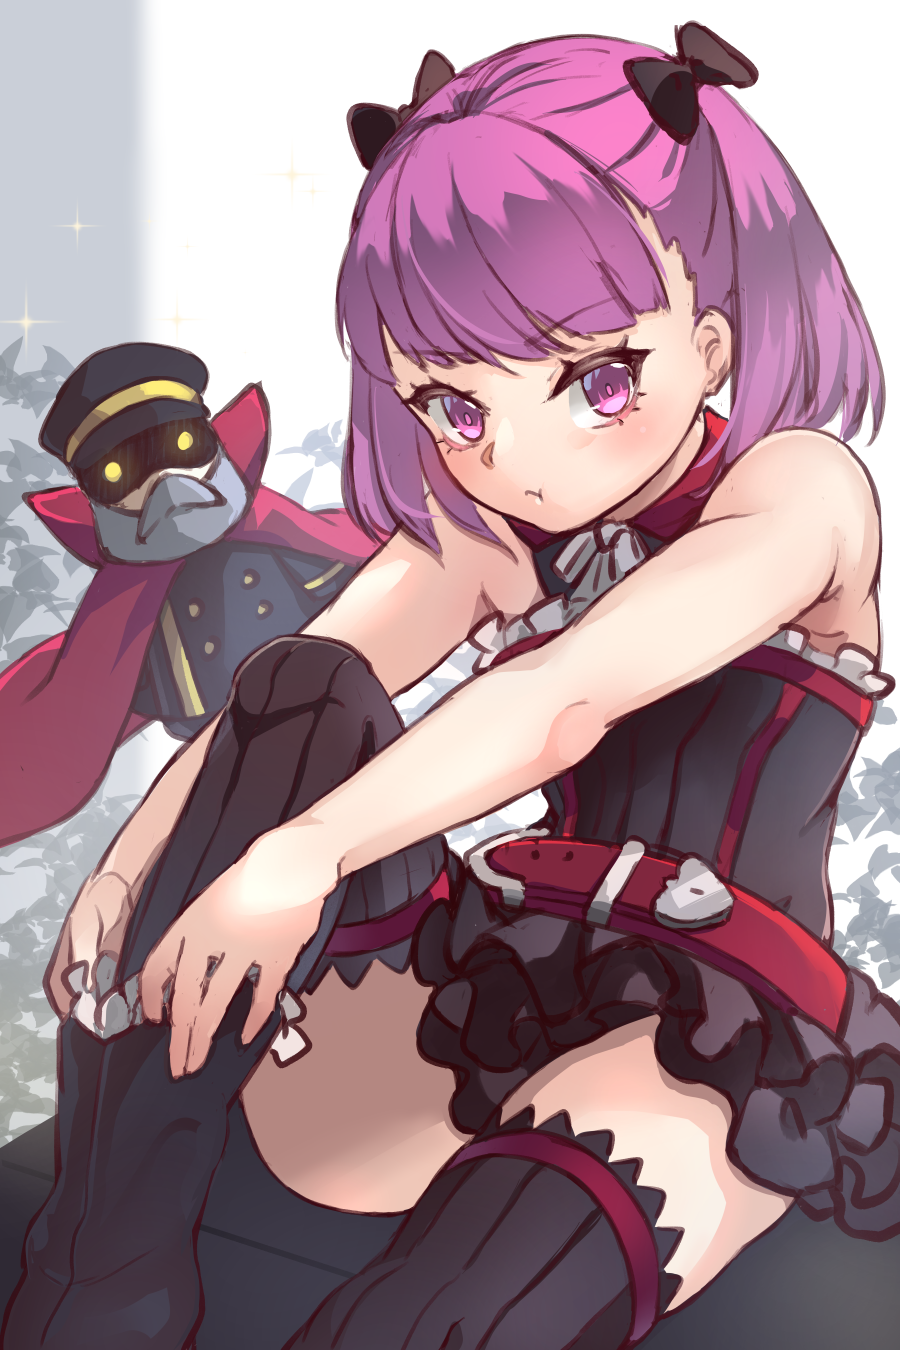 1girl :t bangs bare_arms bare_shoulders belt belt_buckle black_bow black_dress black_footwear black_legwear blush boots bow breasts buckle cape closed_mouth colonel_olcott_(fate/grand_order) commentary_request doll dress dressing eyebrows_visible_through_hair fate/grand_order fate_(series) glowing glowing_eyes hair_bow helena_blavatsky_(fate/grand_order) highres knee_up looking_at_viewer miya_(pixiv15283026) pout purple_hair red_belt red_cape short_hair sitting small_breasts strapless strapless_dress thigh-highs twintails v-shaped_eyebrows violet_eyes